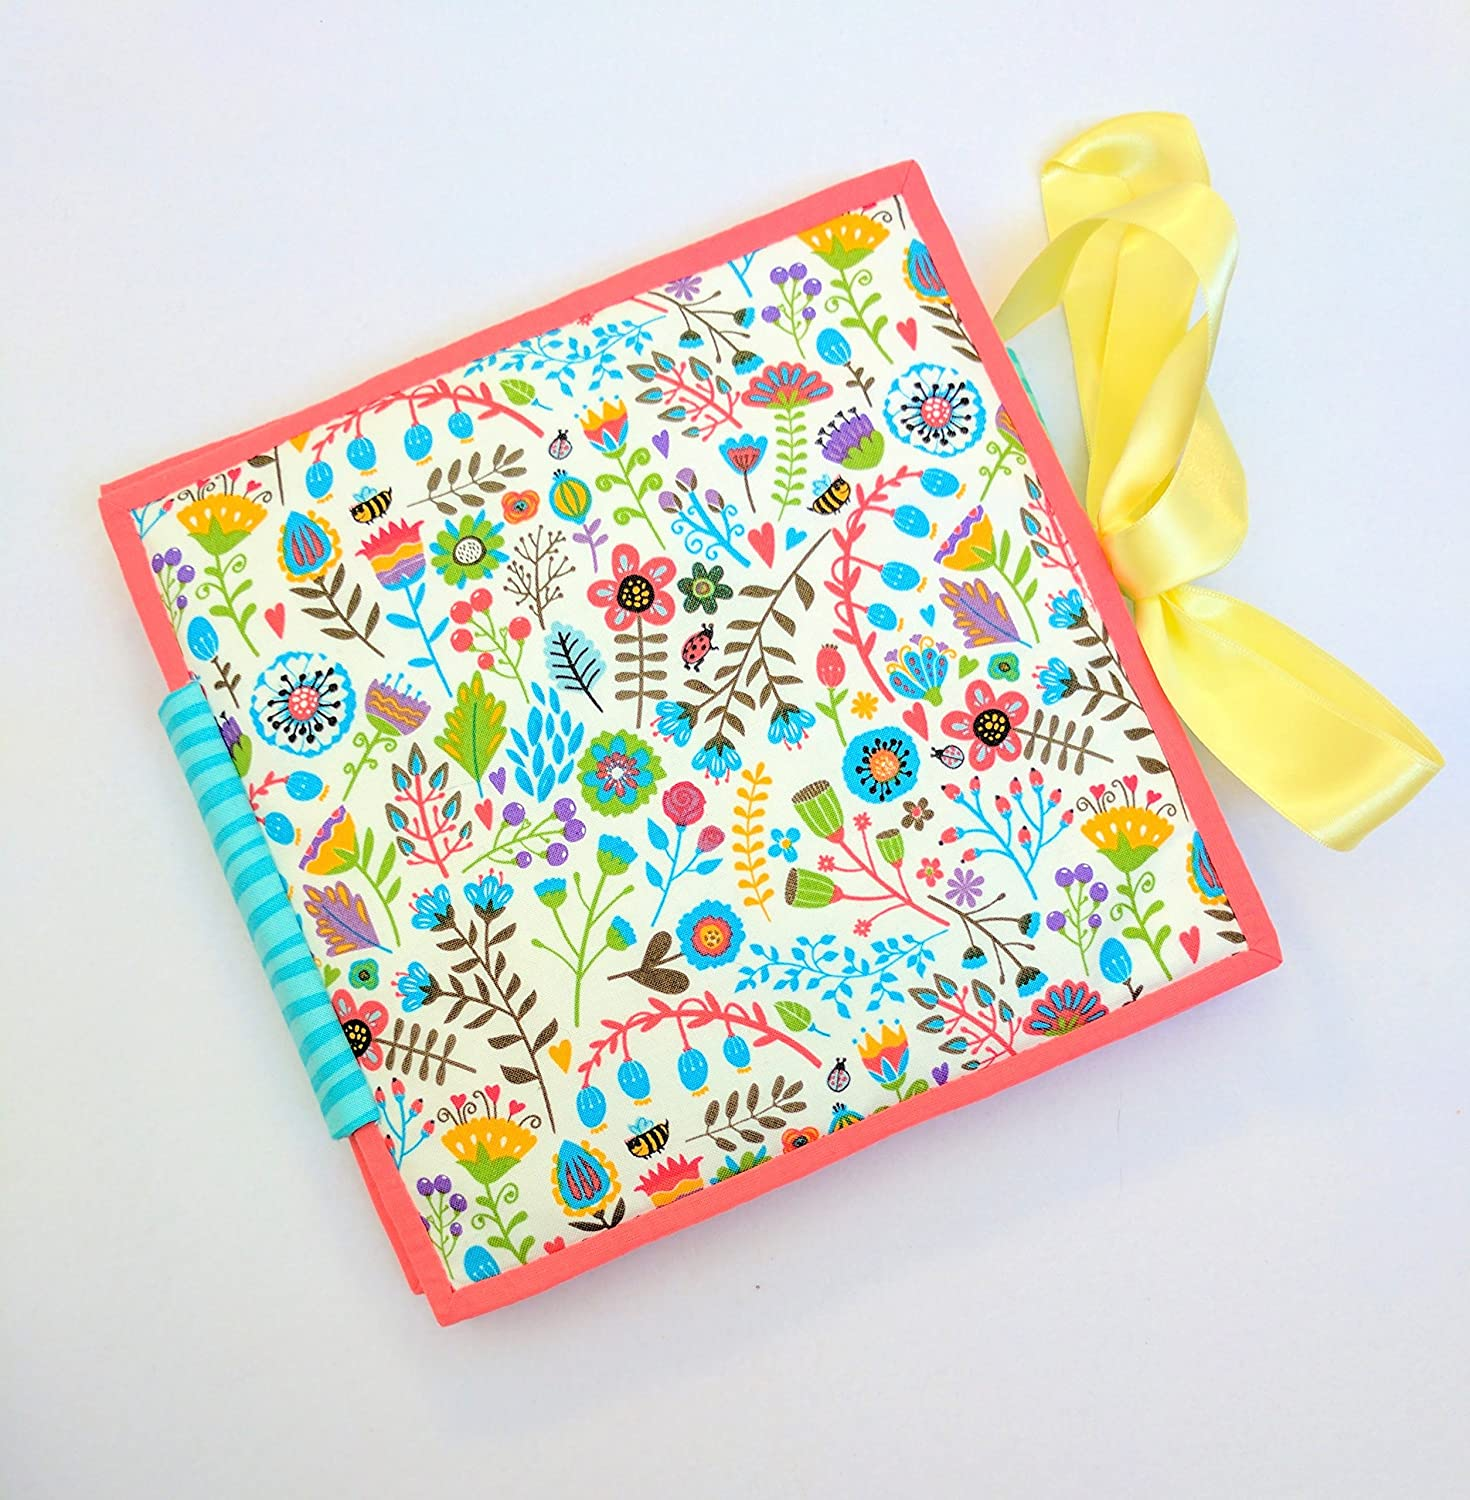 Quiet mini book for Girls Activity toy 4 pages Textile Busy for children